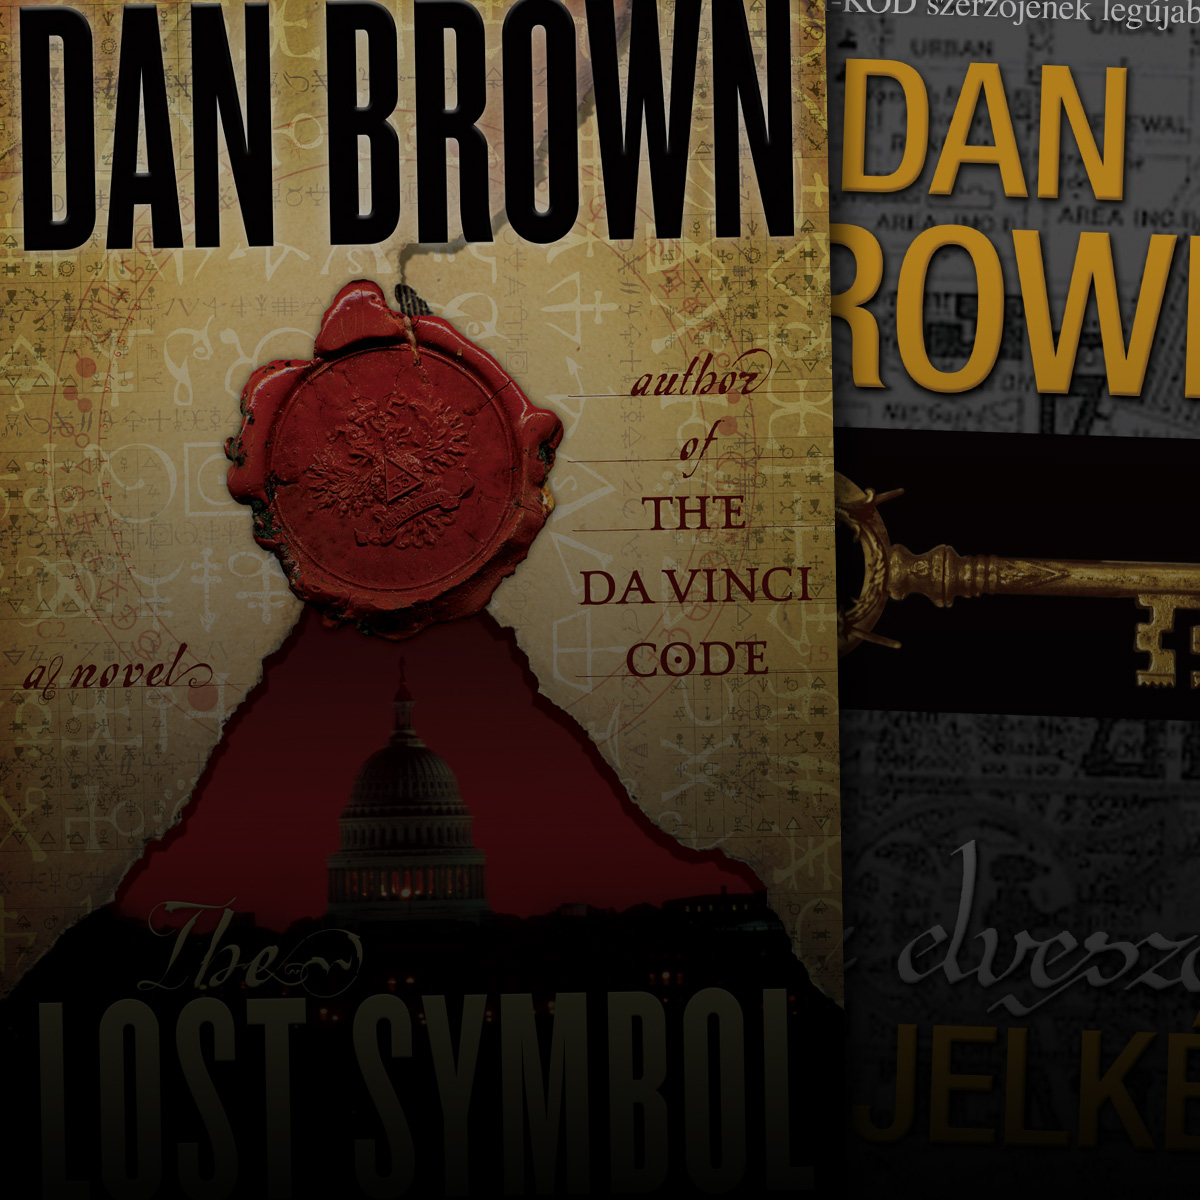 The lost symbol dan brown dctop buycottarizona